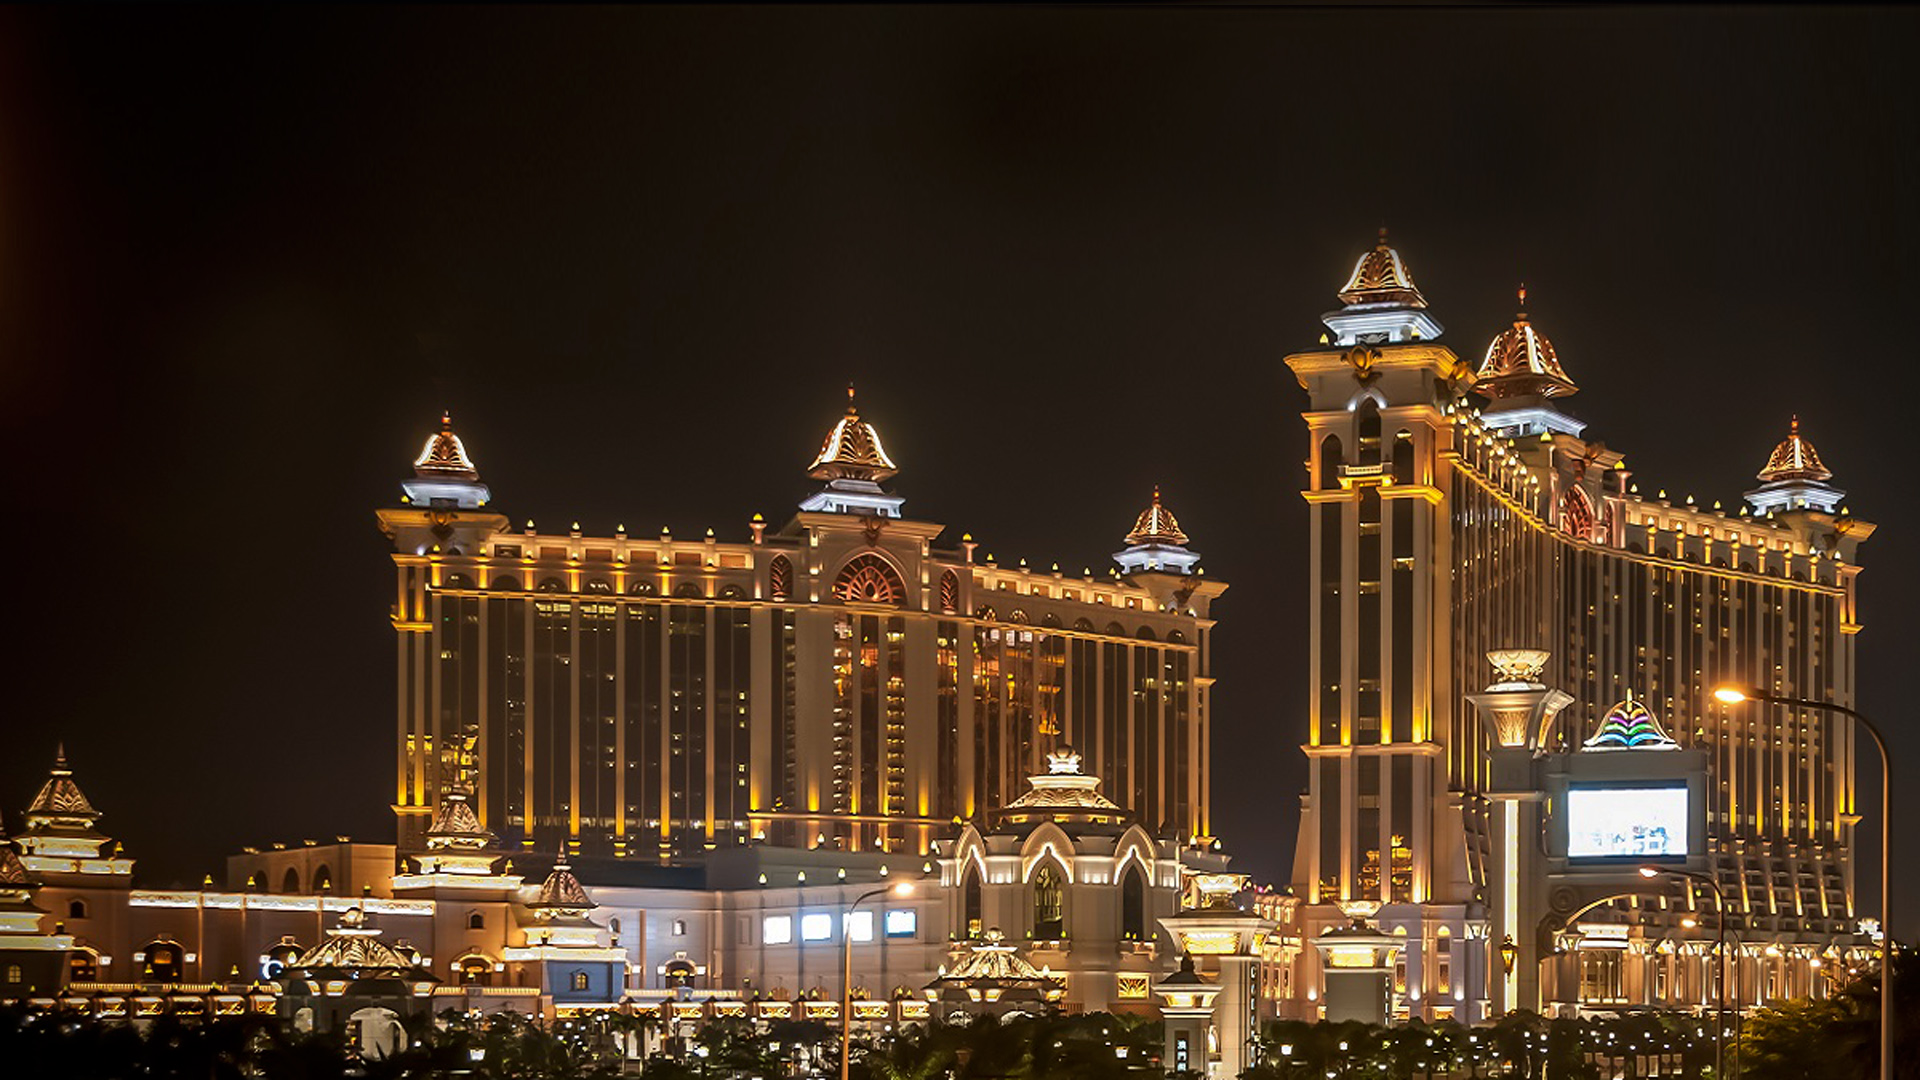 Night View Of Galaxy Hotel Hotel Complex In Macau China Full Hd Wallpapers 1920x1080